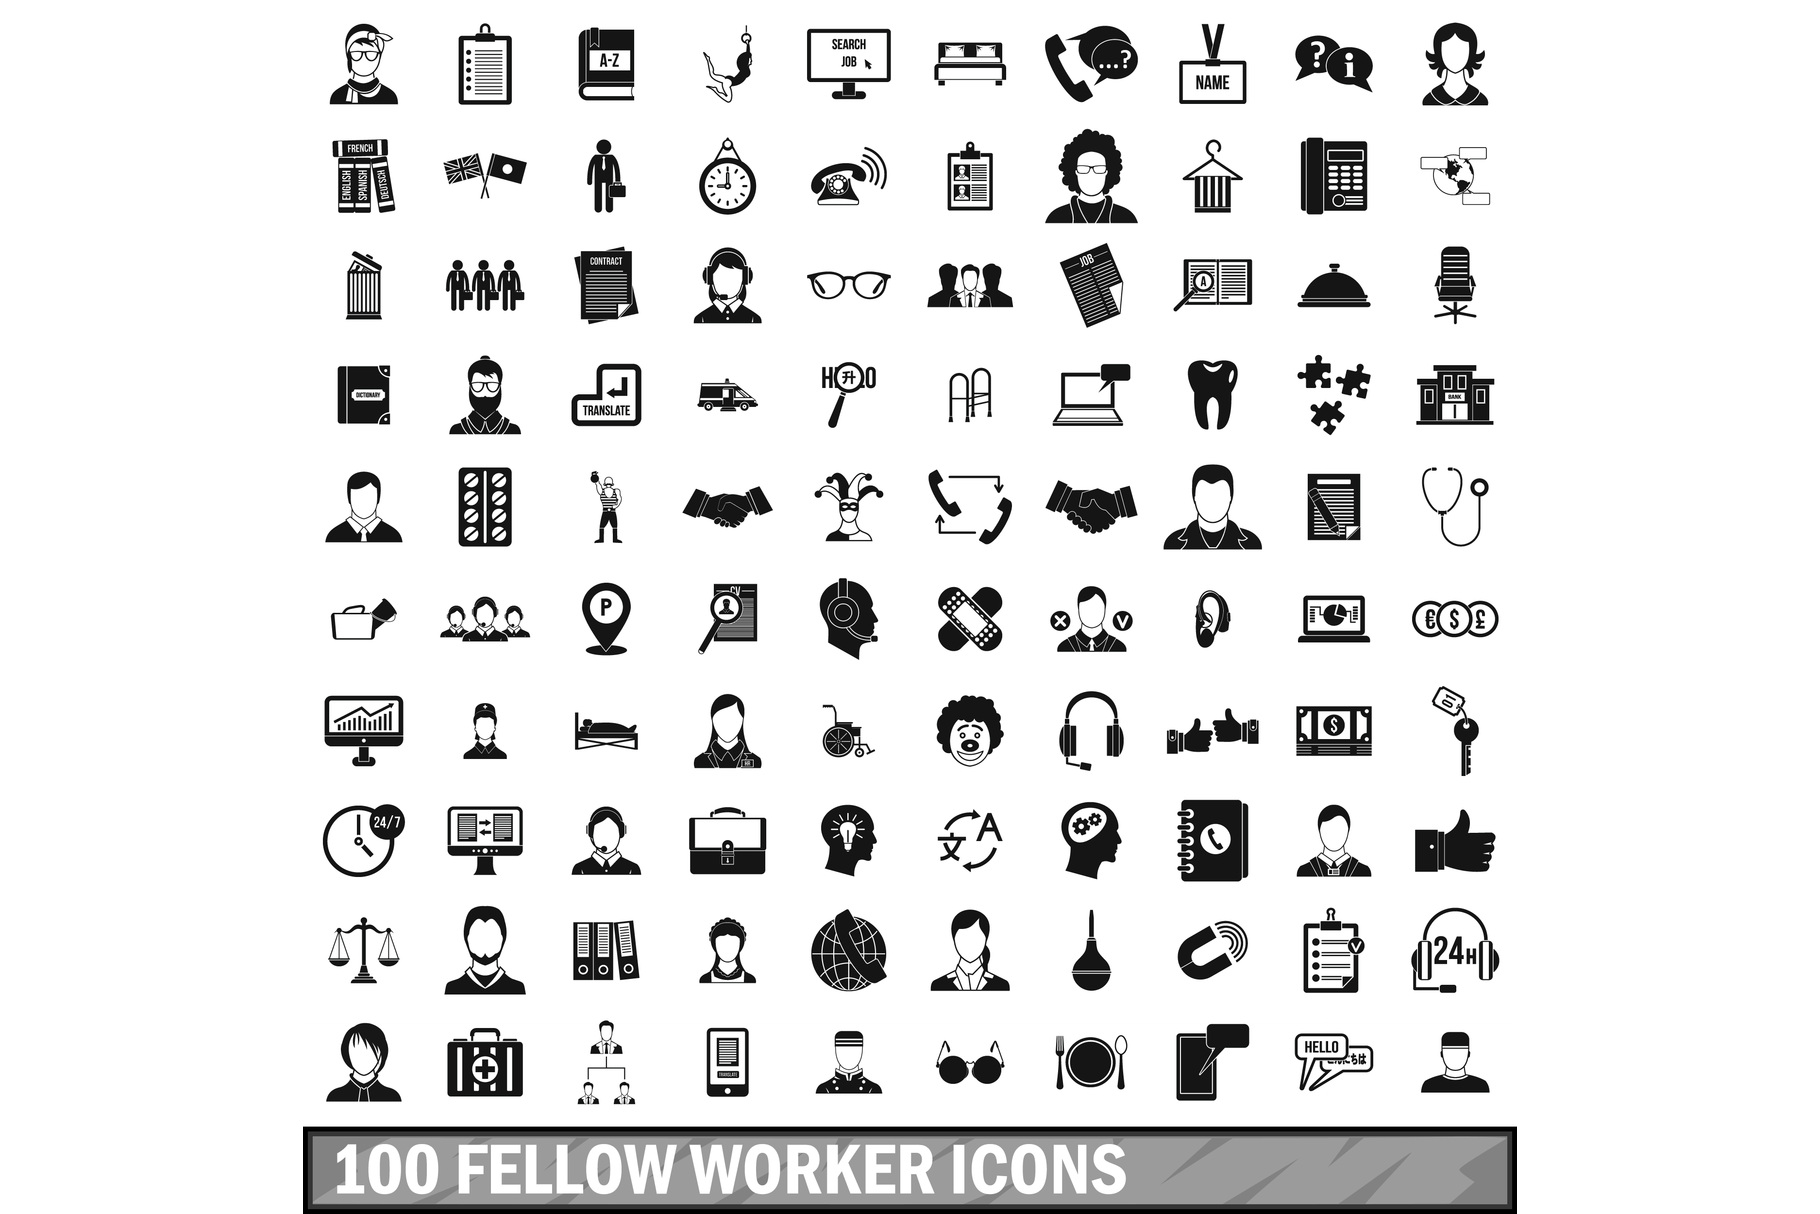 100 fellow worker icons set, simple style example image 1